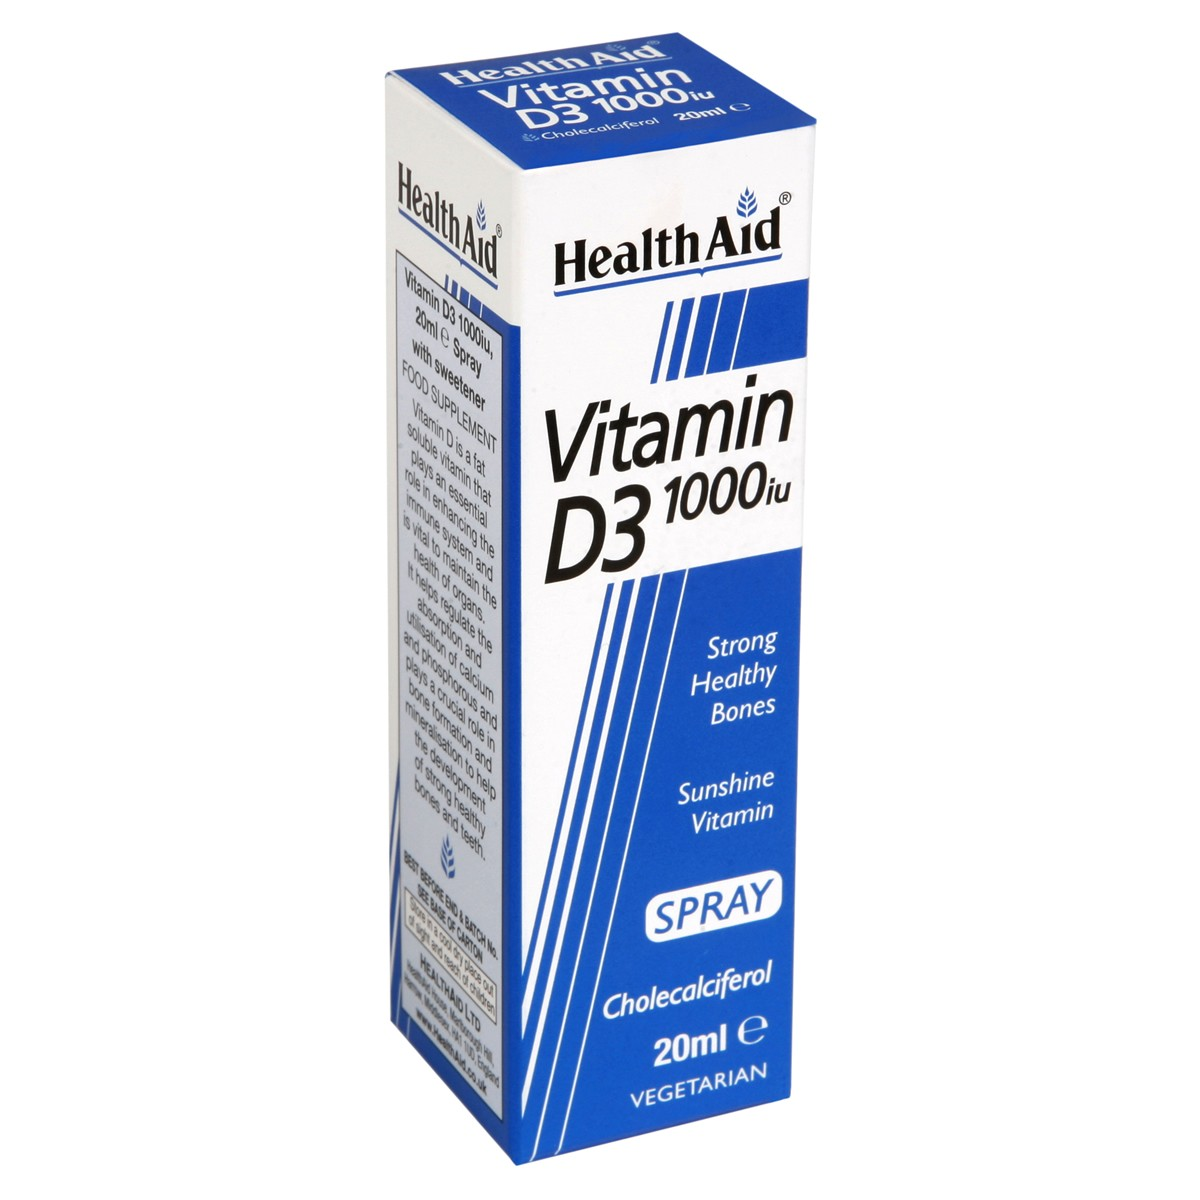 HealthAid Vitamin D3 1000iu Spray